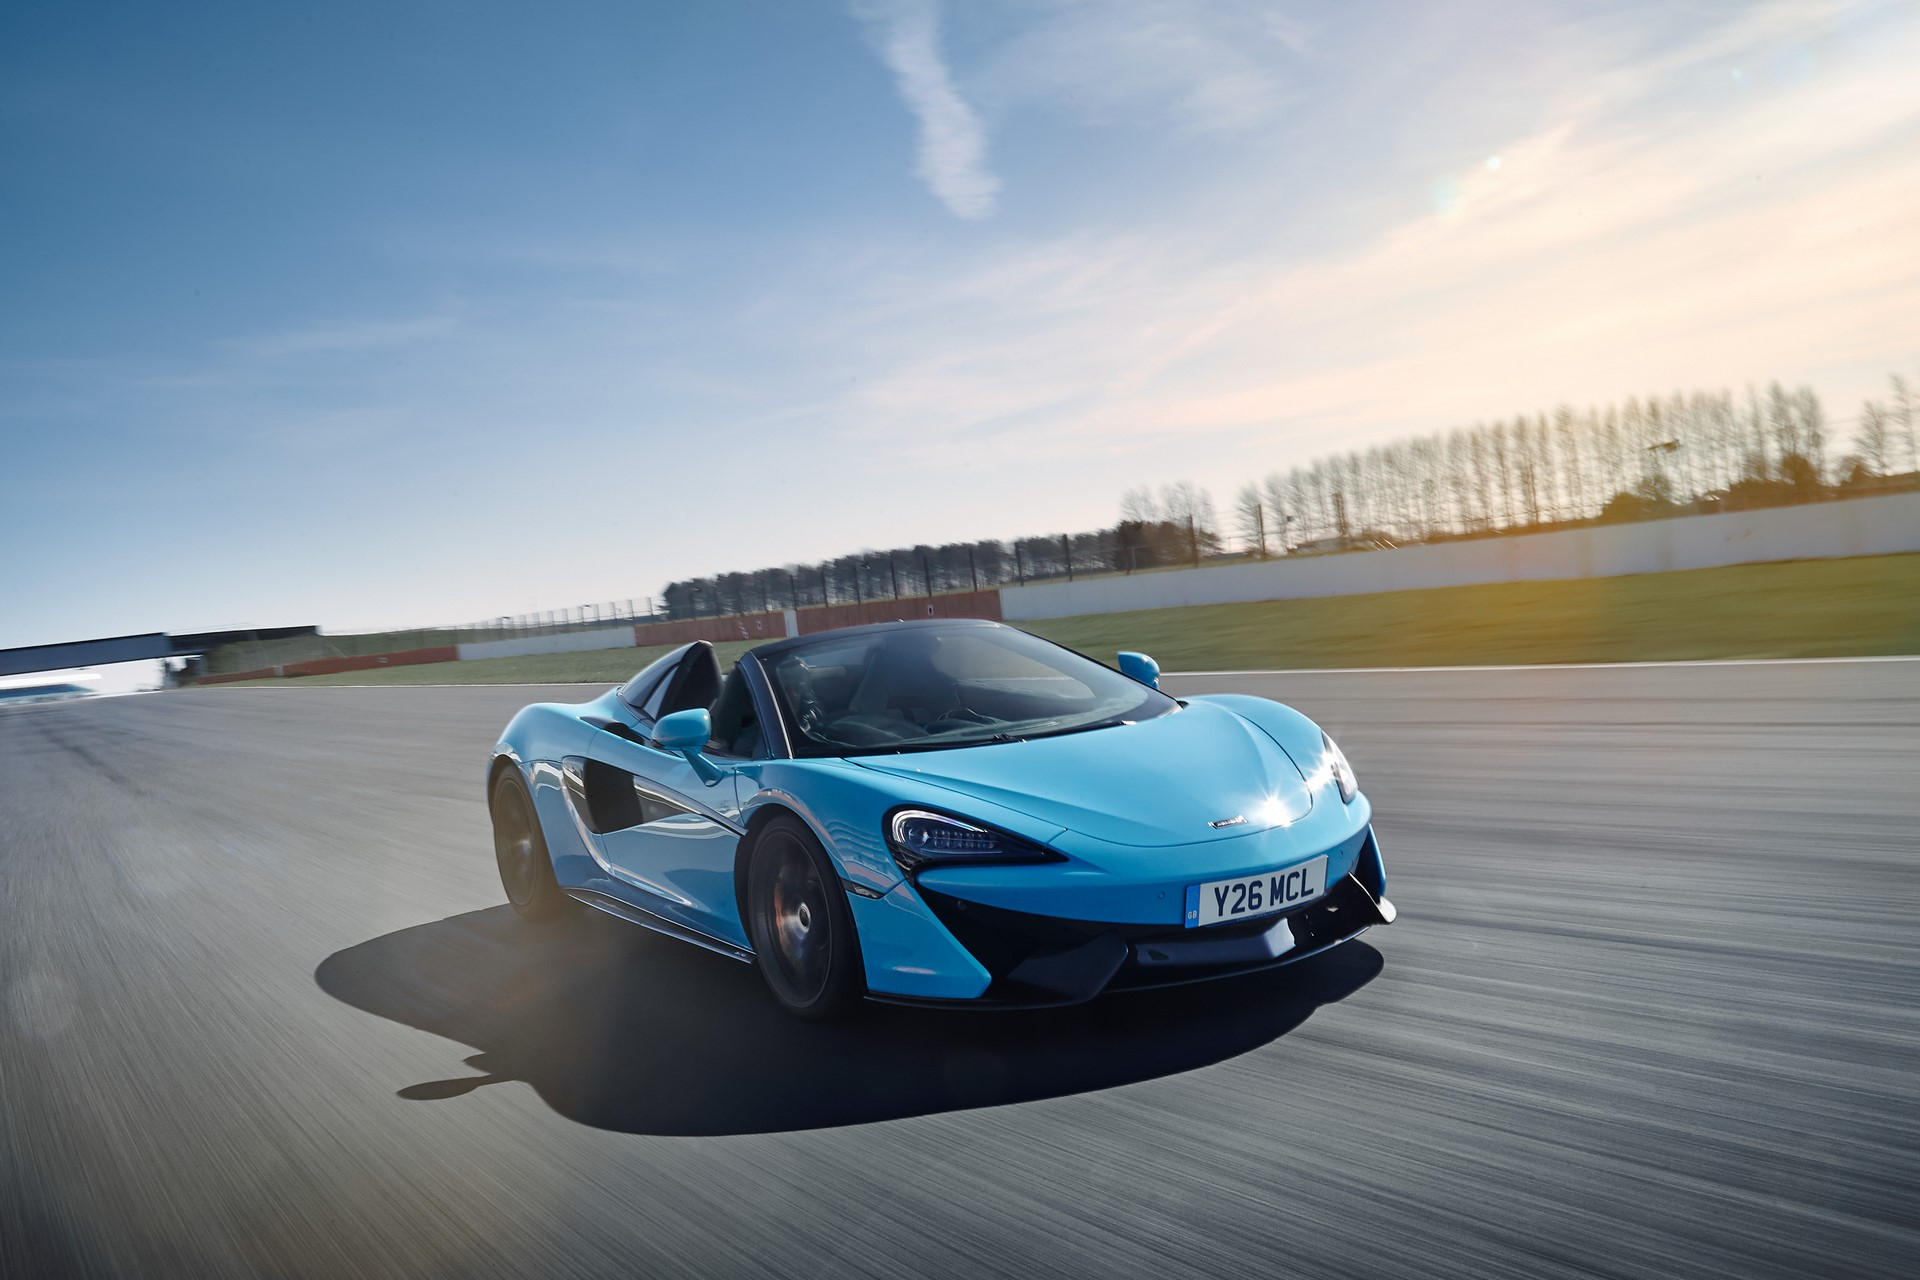 Pure McLaren Silverstone March 2018 World Copyright: Patrick Gosling / Beadyeye Ref: Pure McLaren Silverstone-March2018-5213.CR2